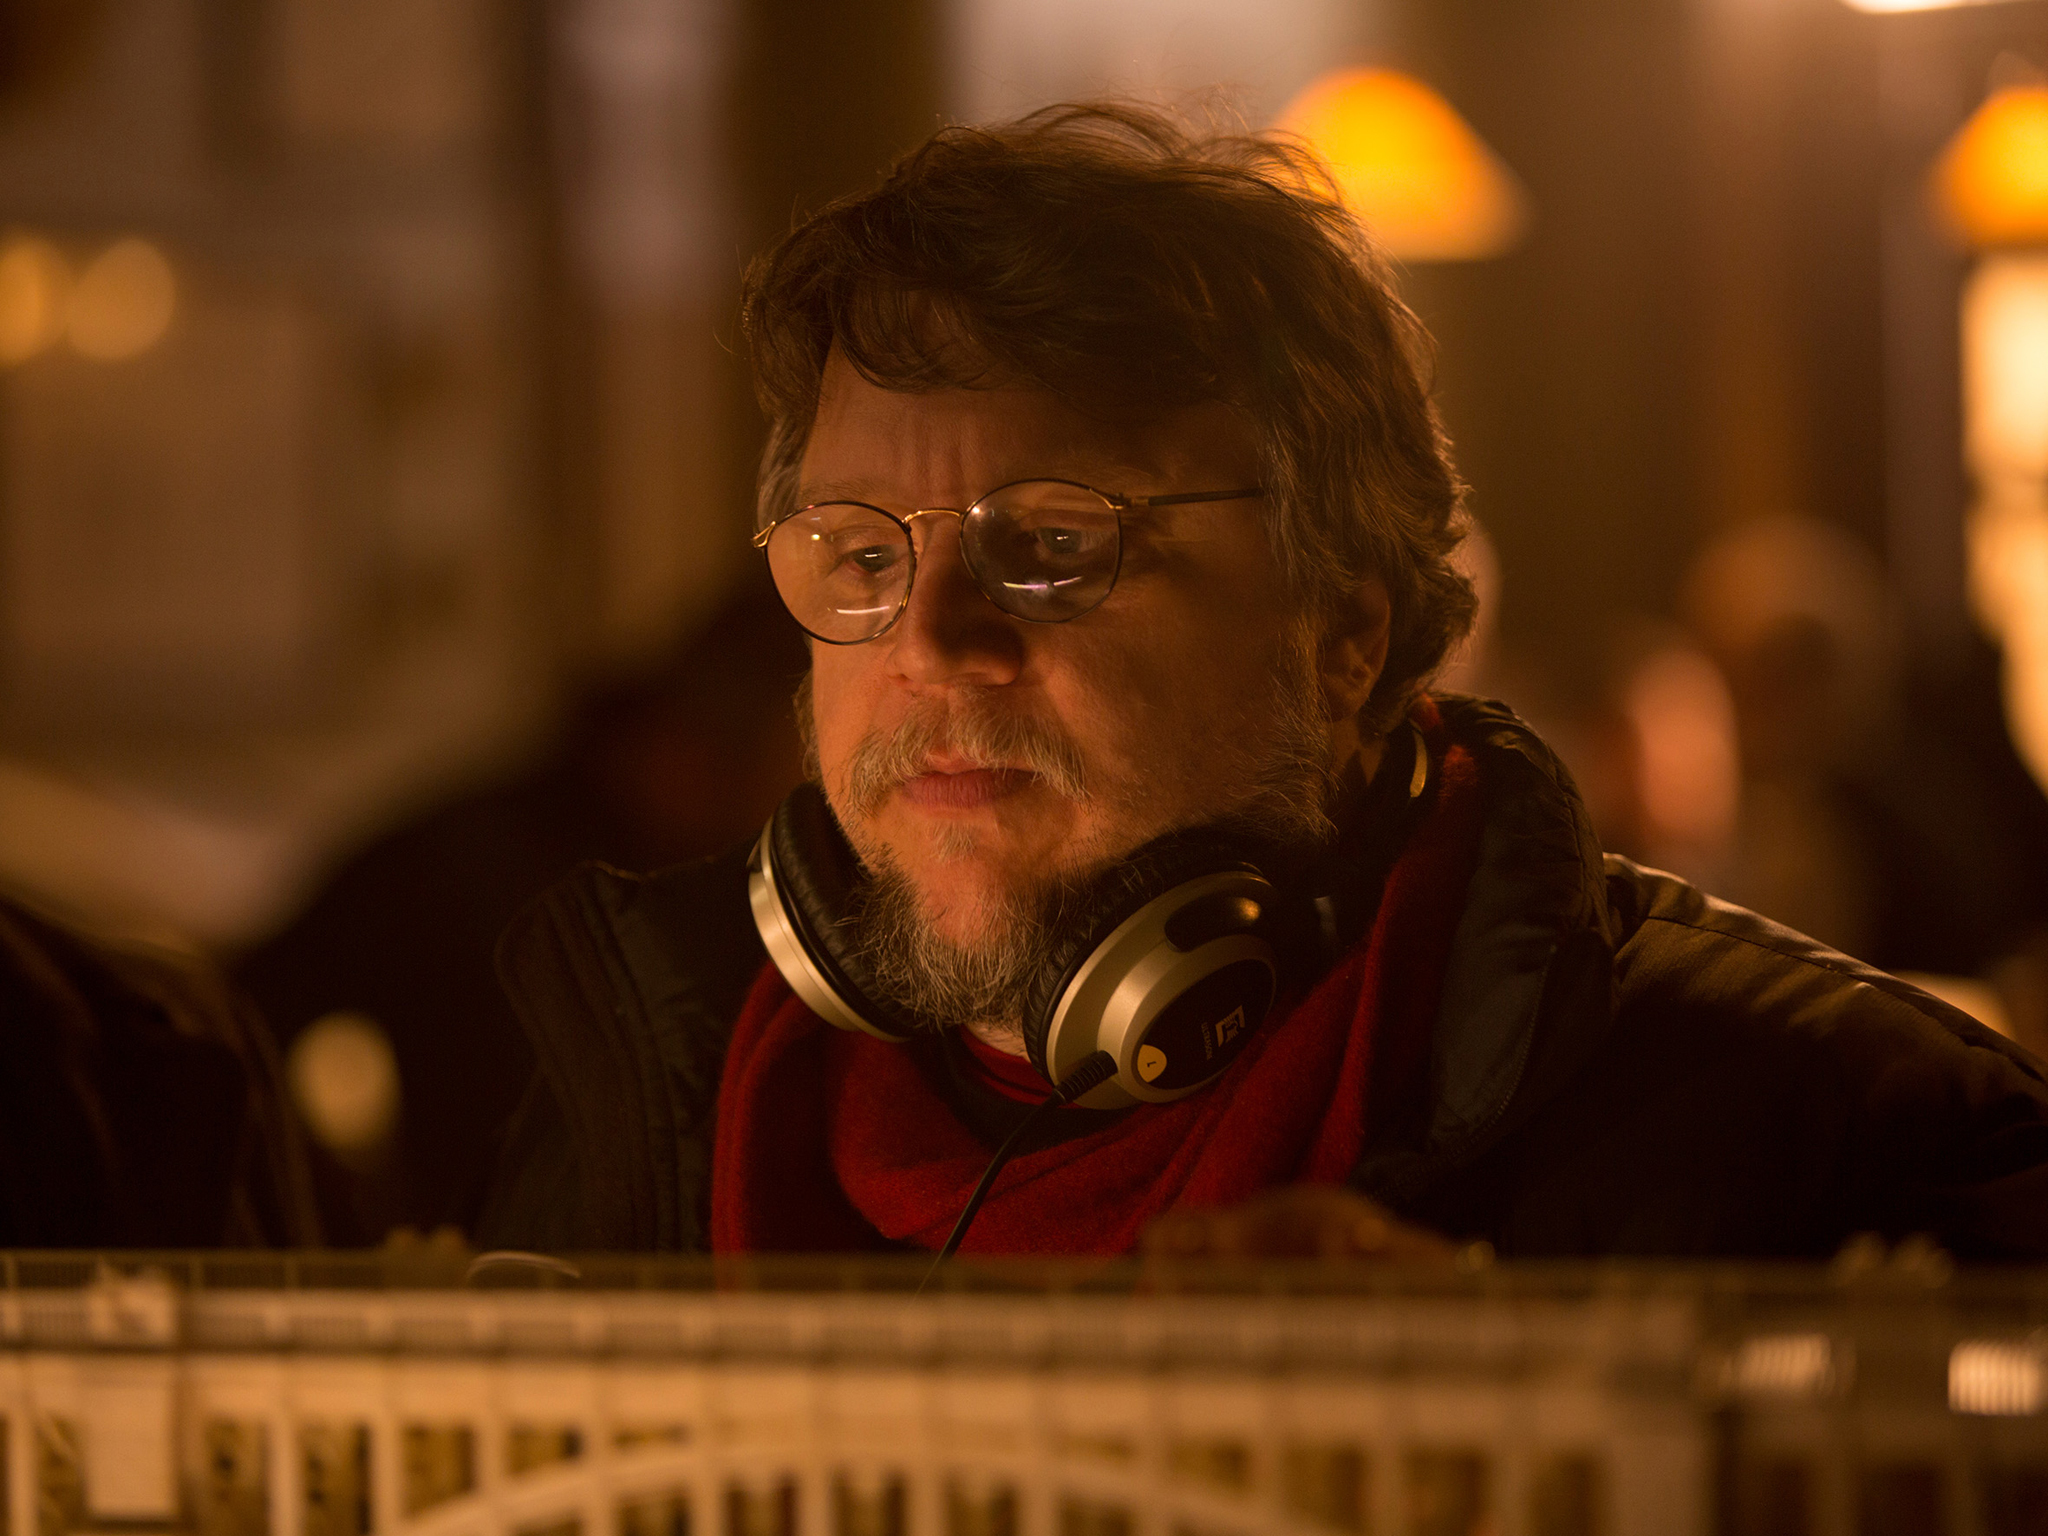 Guillermo del Toro on England giving him the creeps and setting 'Crimson Peak' in the UK